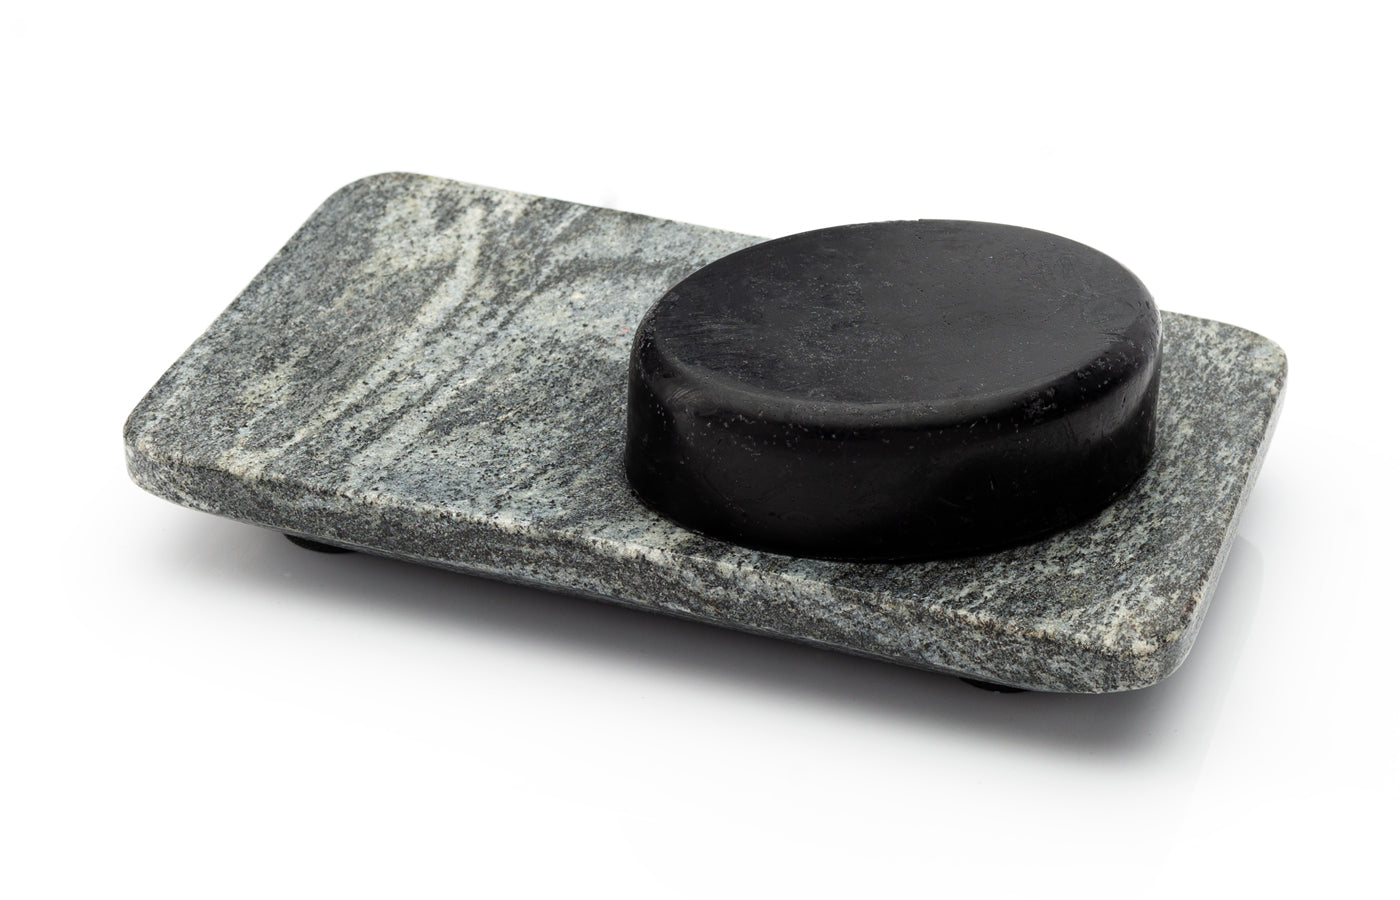 activated charcoal soap, skin cleanser, activated charcoal, hemp seed oil, charcoal soap, tea tree oil, oily skin cleanser,